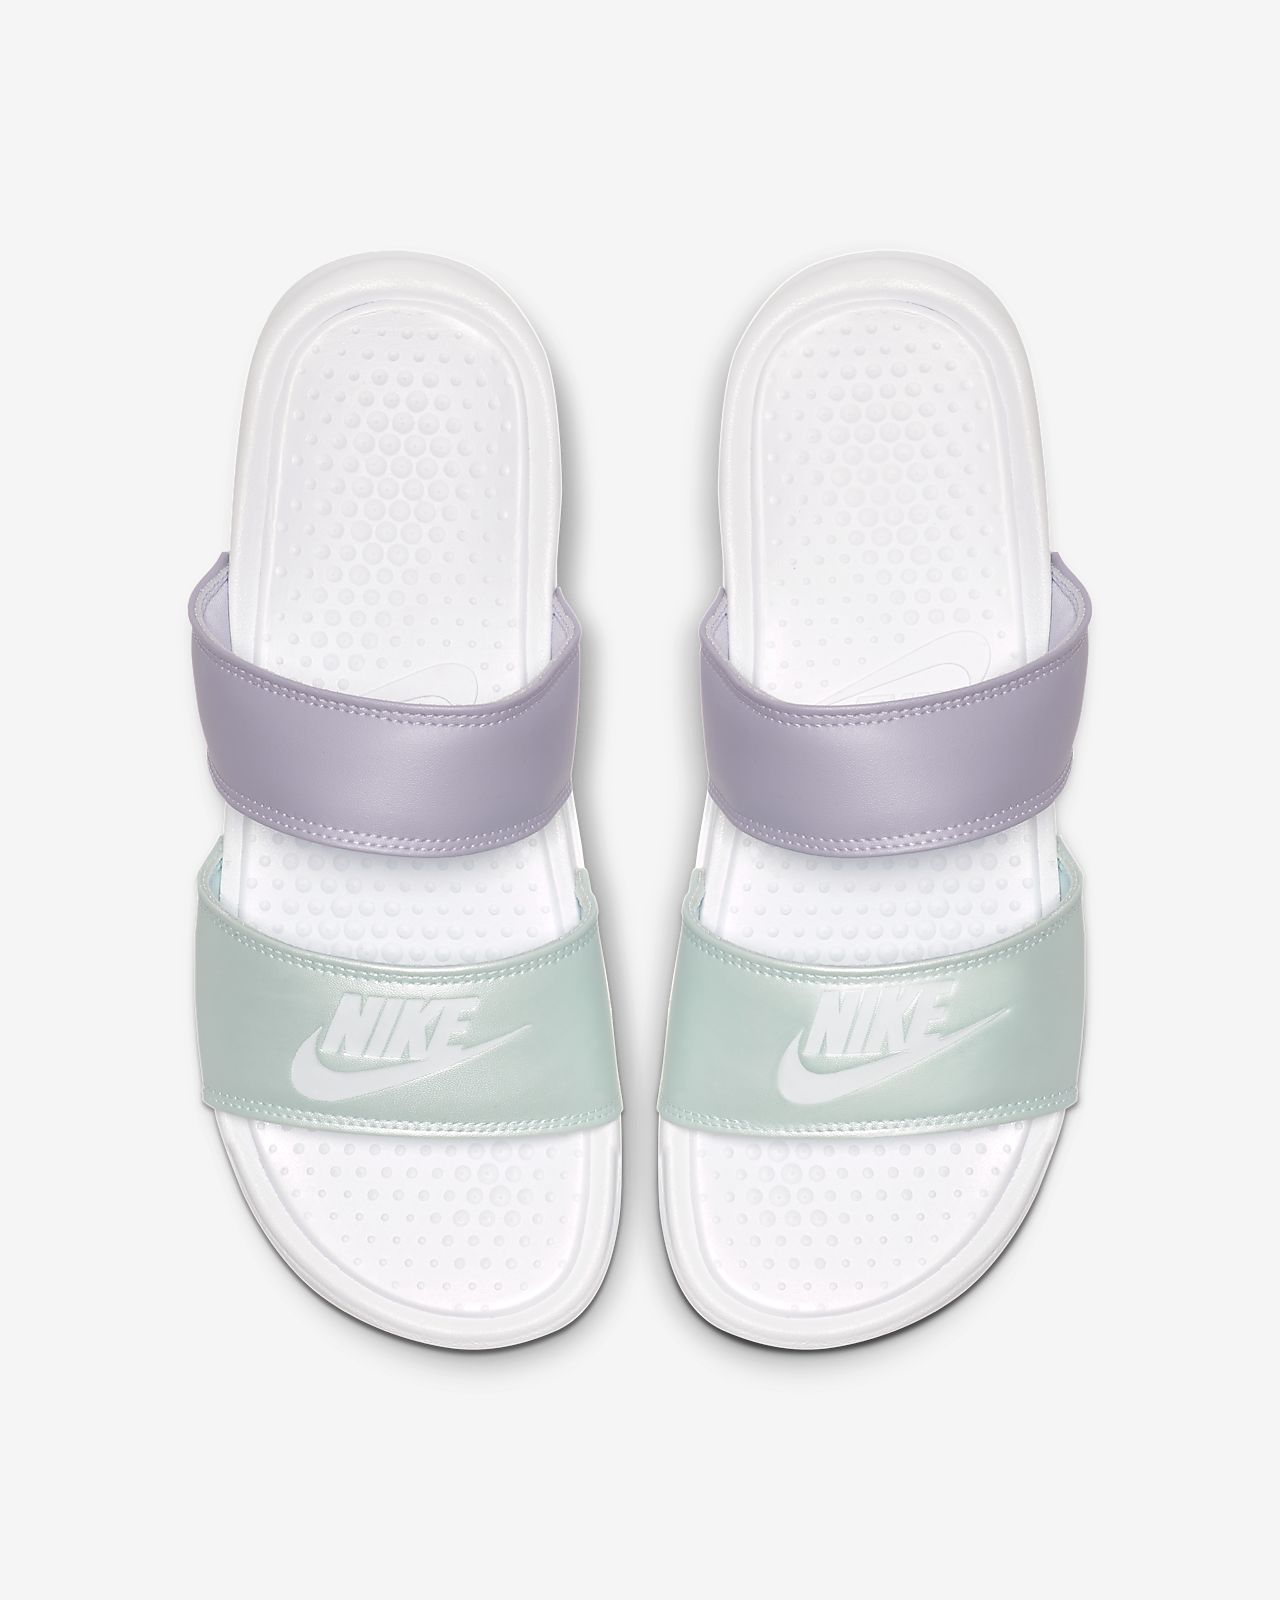 44436fcc67a75 Nike Benassi Duo Ultra Women s Slide. Nike.com